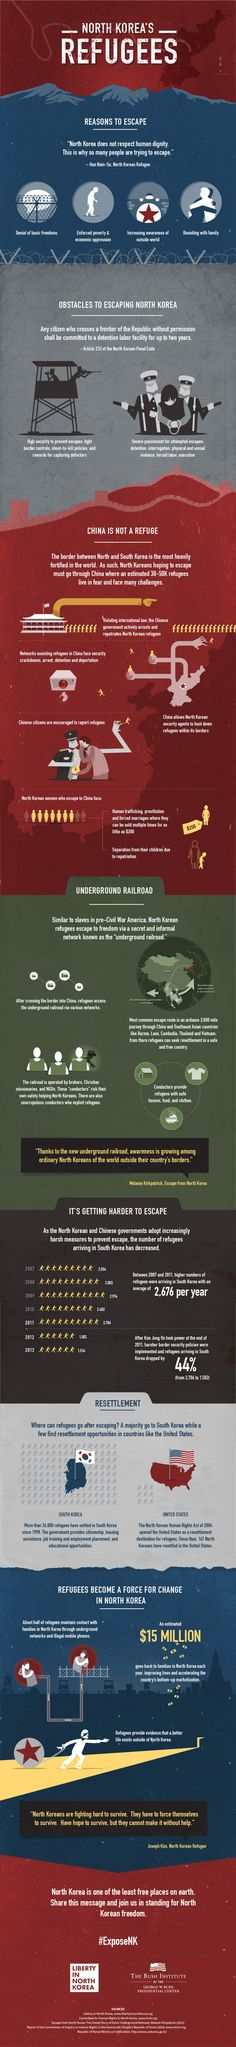 Using data from Liberty in North Korea (LiNK), the Committee for Human Rights in North Korea, and the UN Commission of Inquiry, this infographic relays the challenges faced by North Korean refugees and those who try to help them. The More You Know, Good To Know, Korean People, Blog Topics, Korean War, Human Condition, North Korea, World History, Human Rights